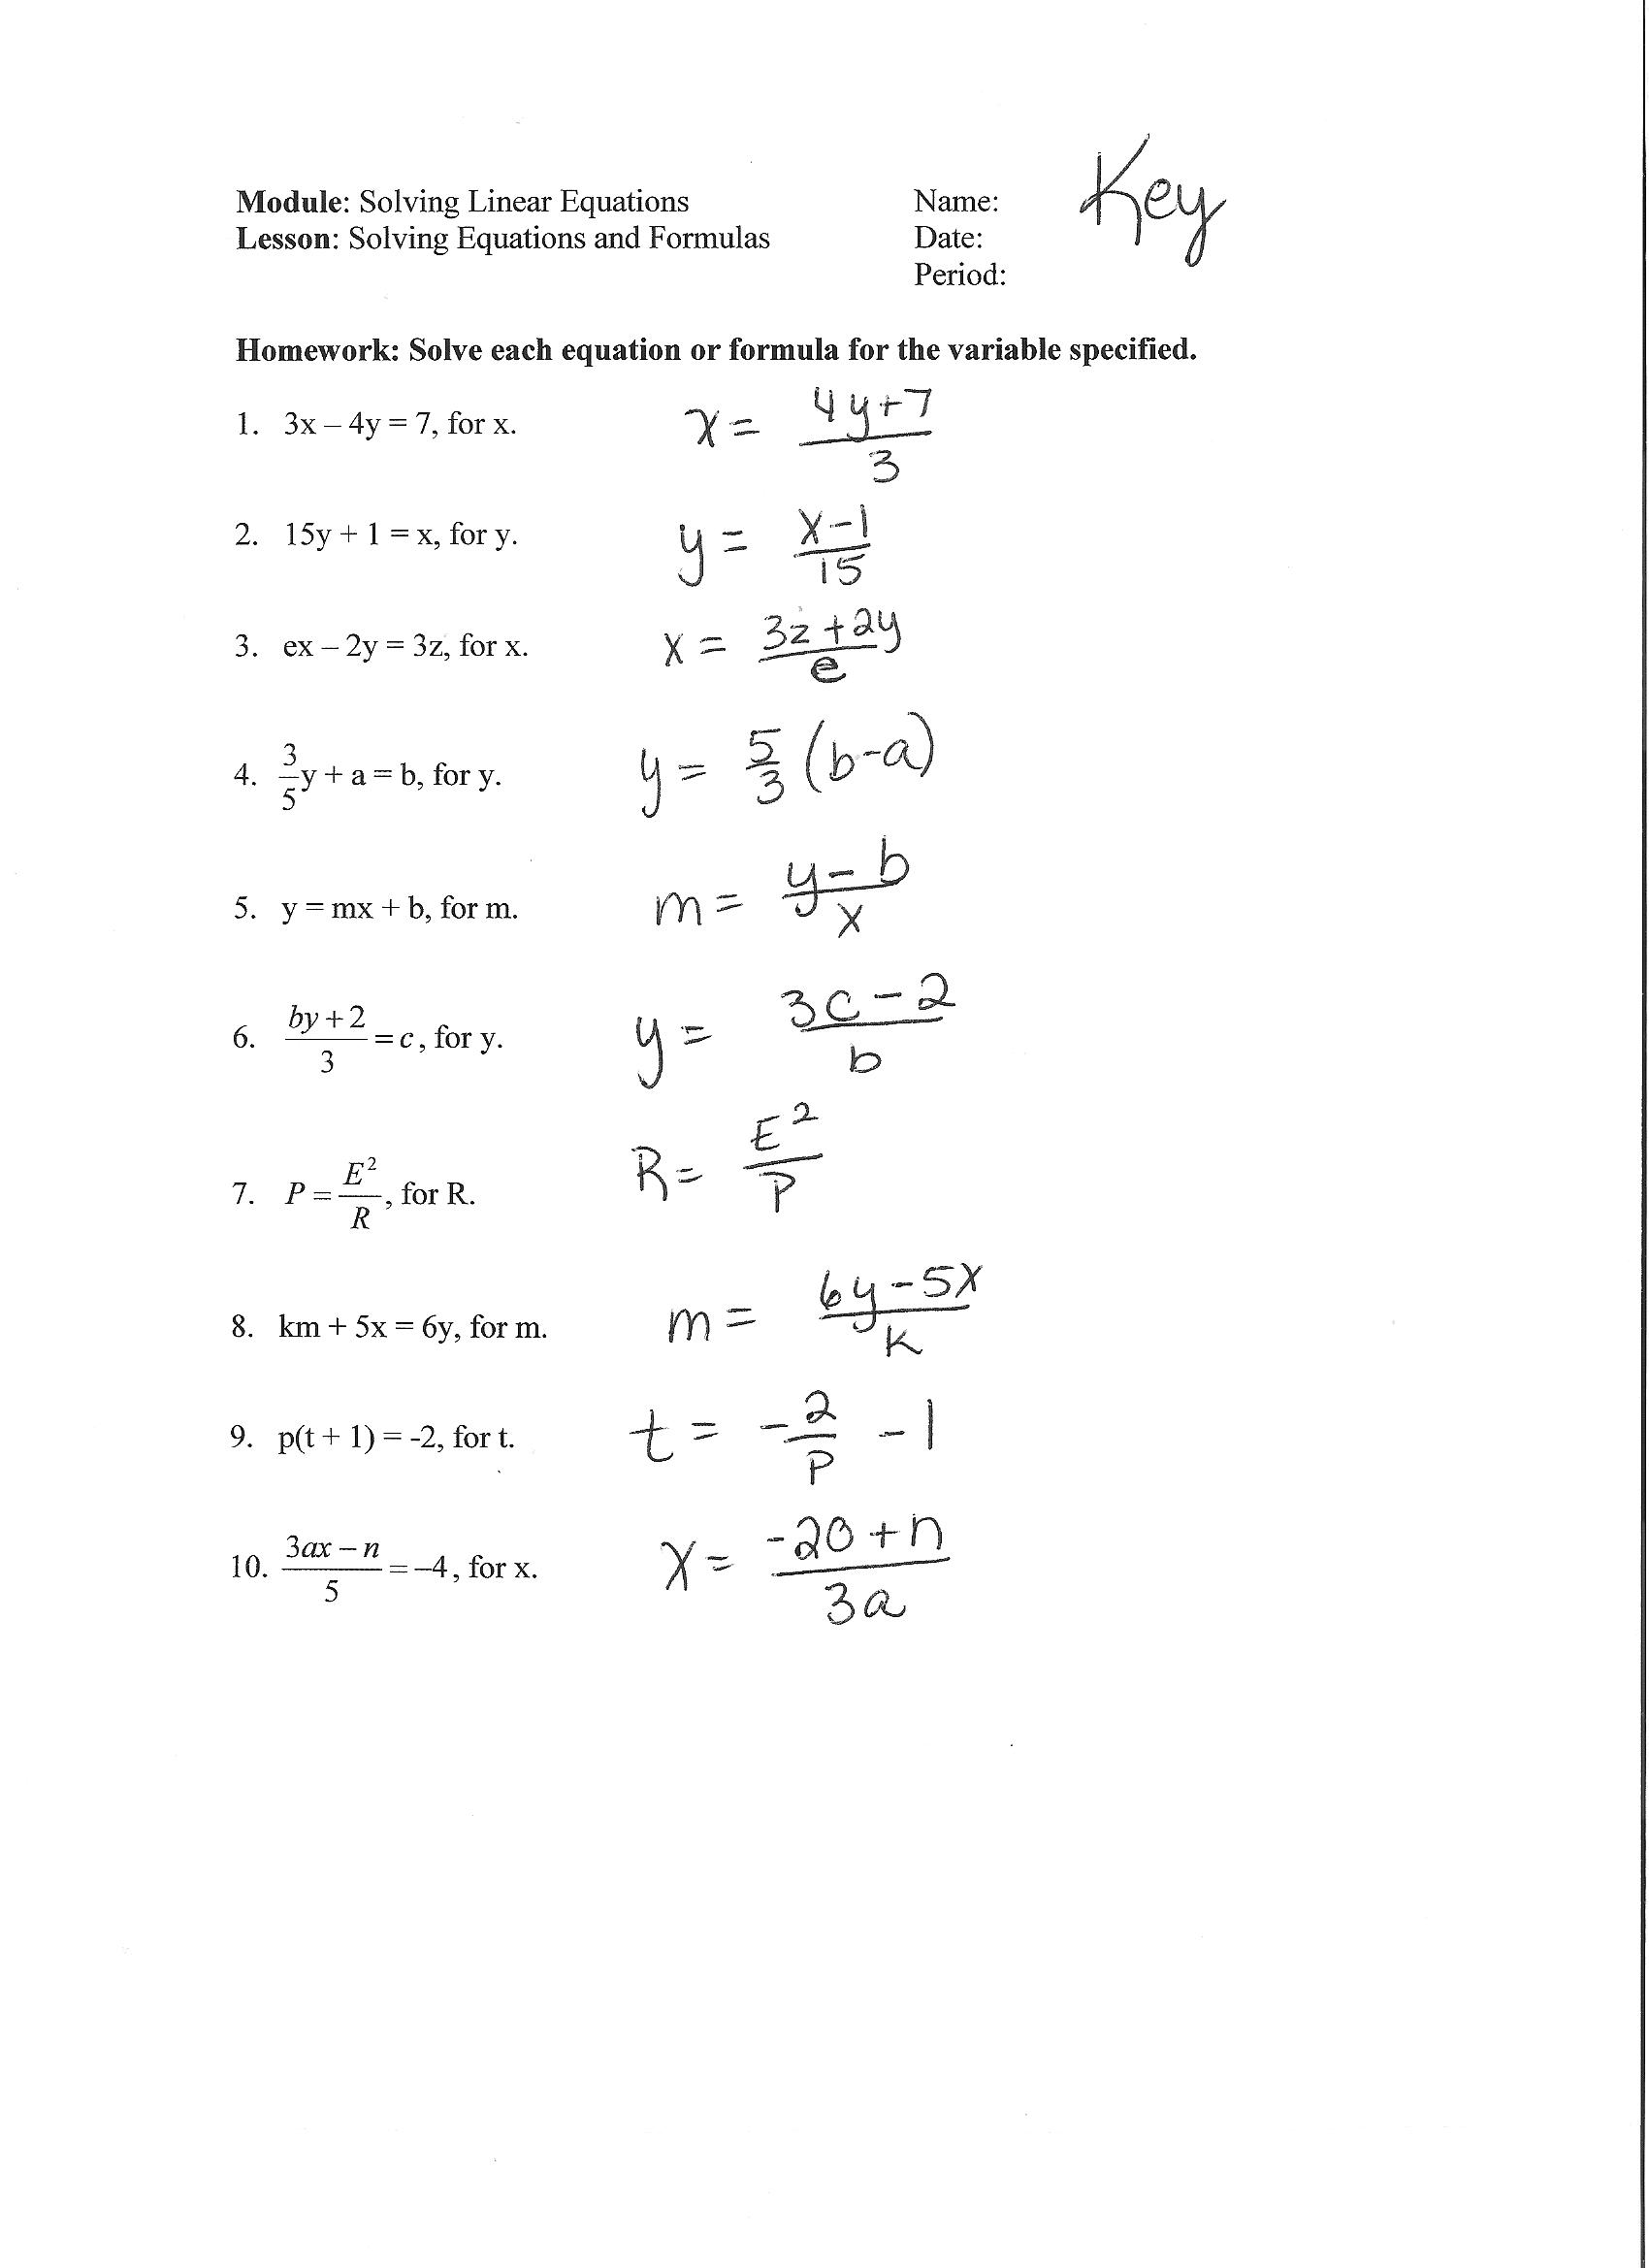 Free Worksheet Literal Equations Worksheets teacher sheila mitchell content area algebra i grade level 9 date day overviewannotation this lesson contains a powe